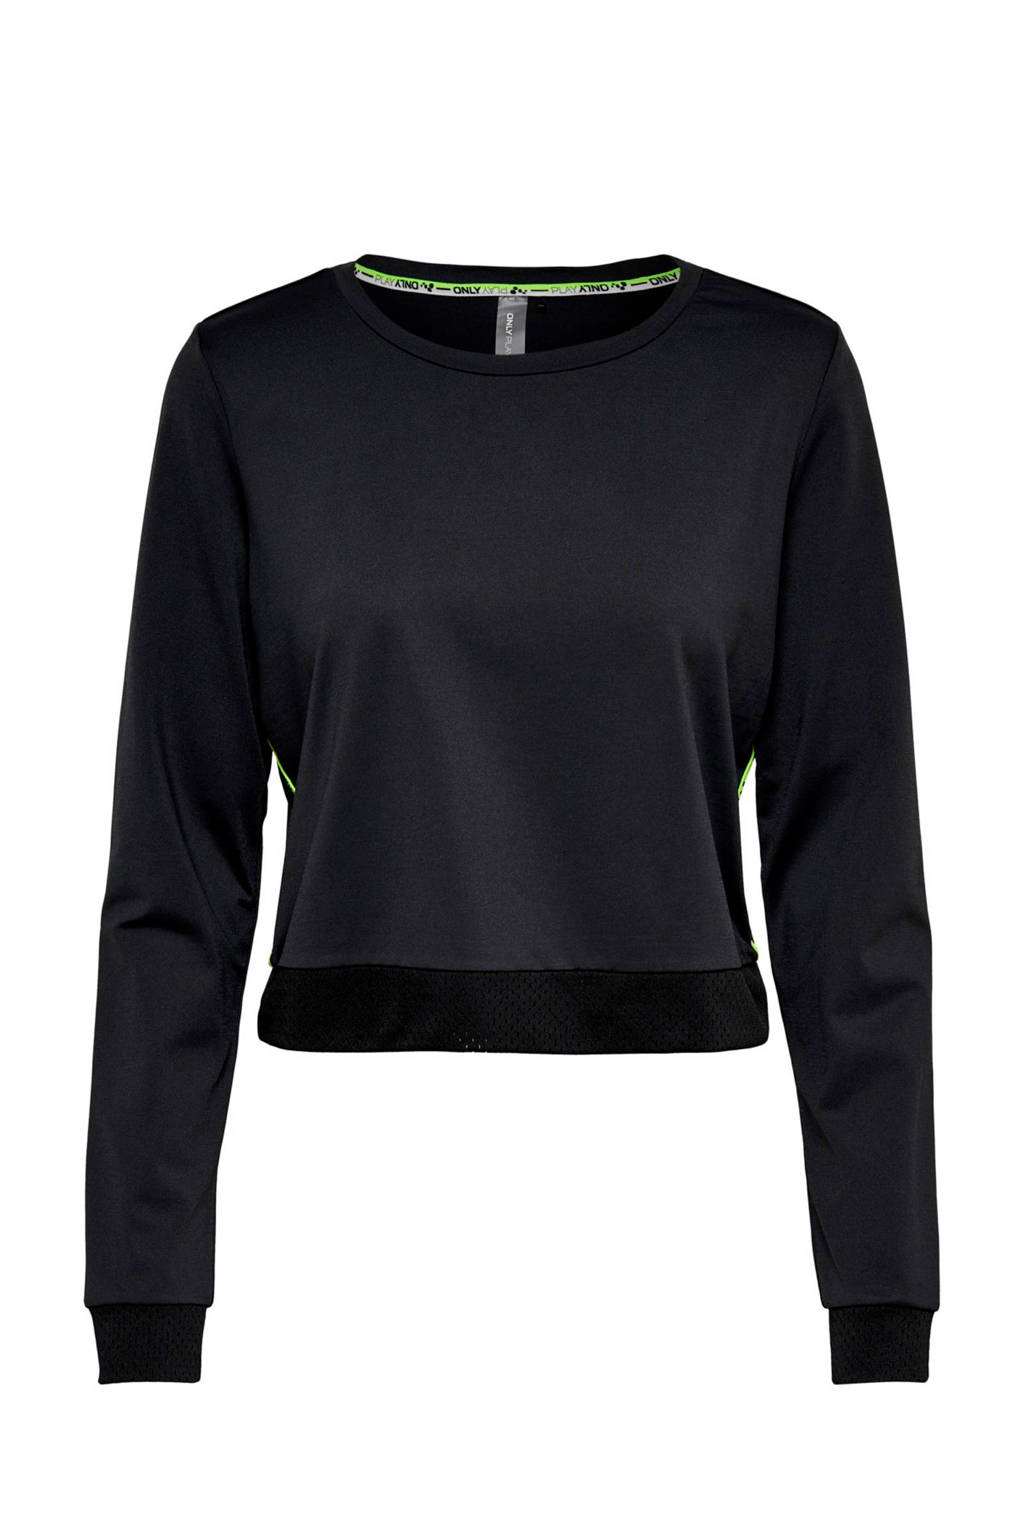 ONLY PLAY cropped sportsweater zwart, Zwart